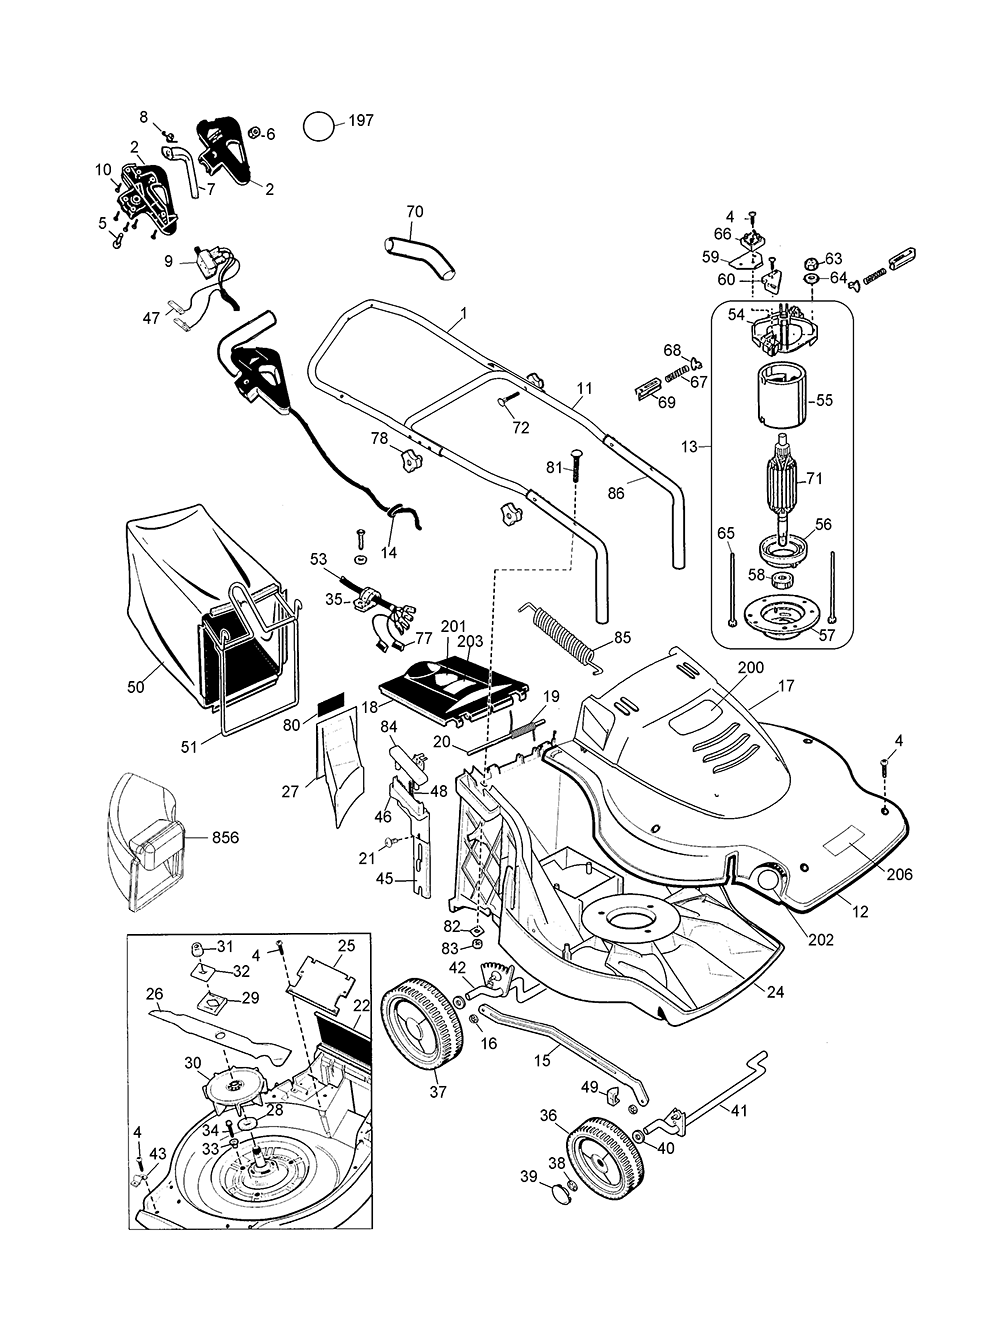 black and decker mm875 parts list and diagram type 1 black cat